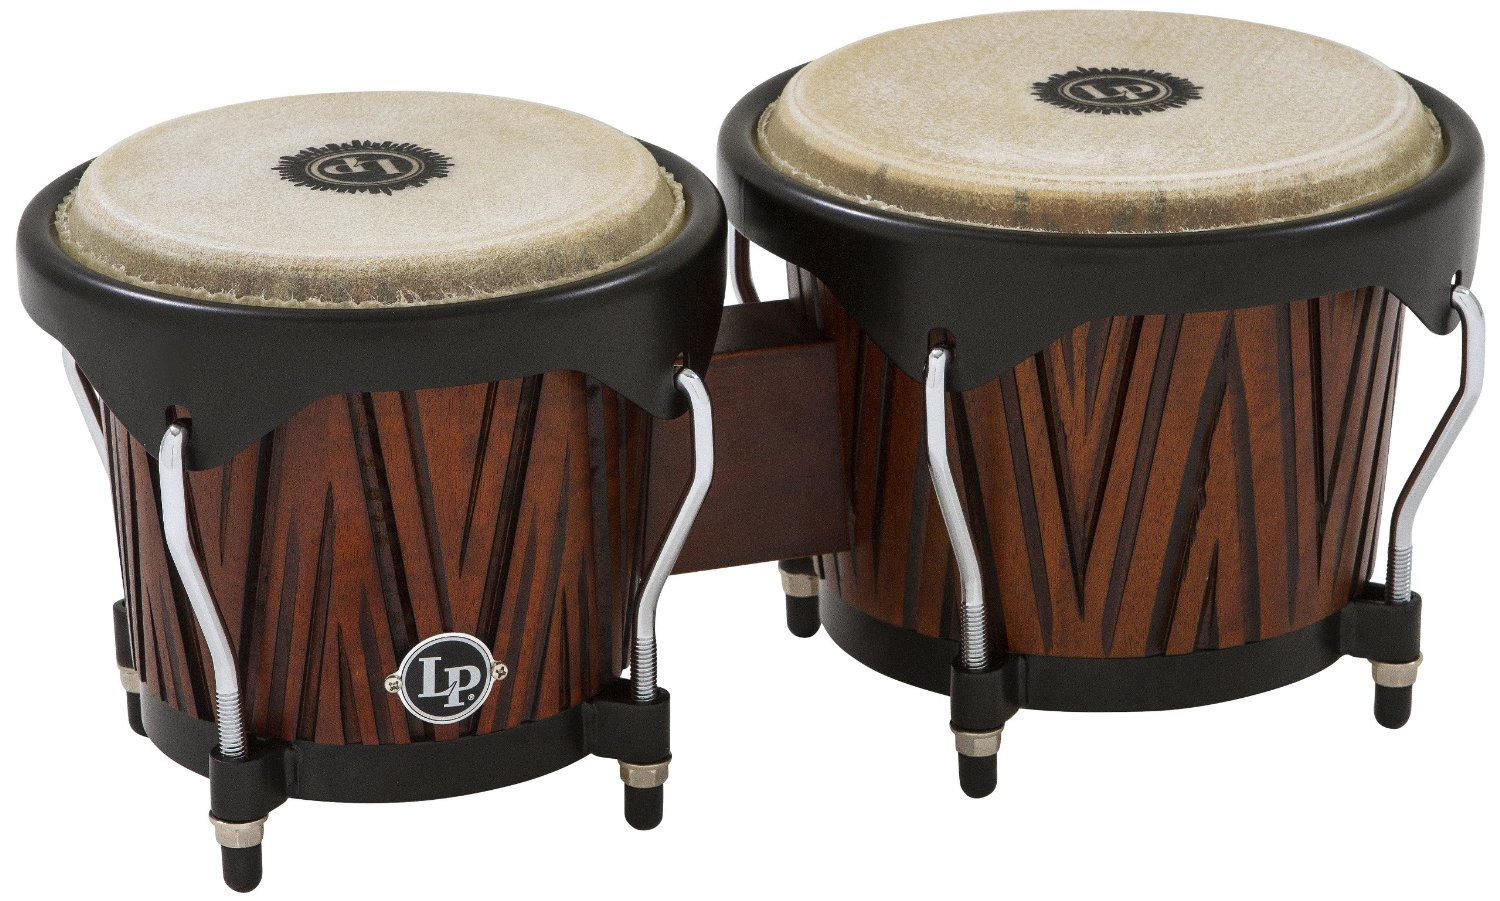 Click here to buy Latin Percussion City Bongos Carved Mango Mahogany Wood by LP.